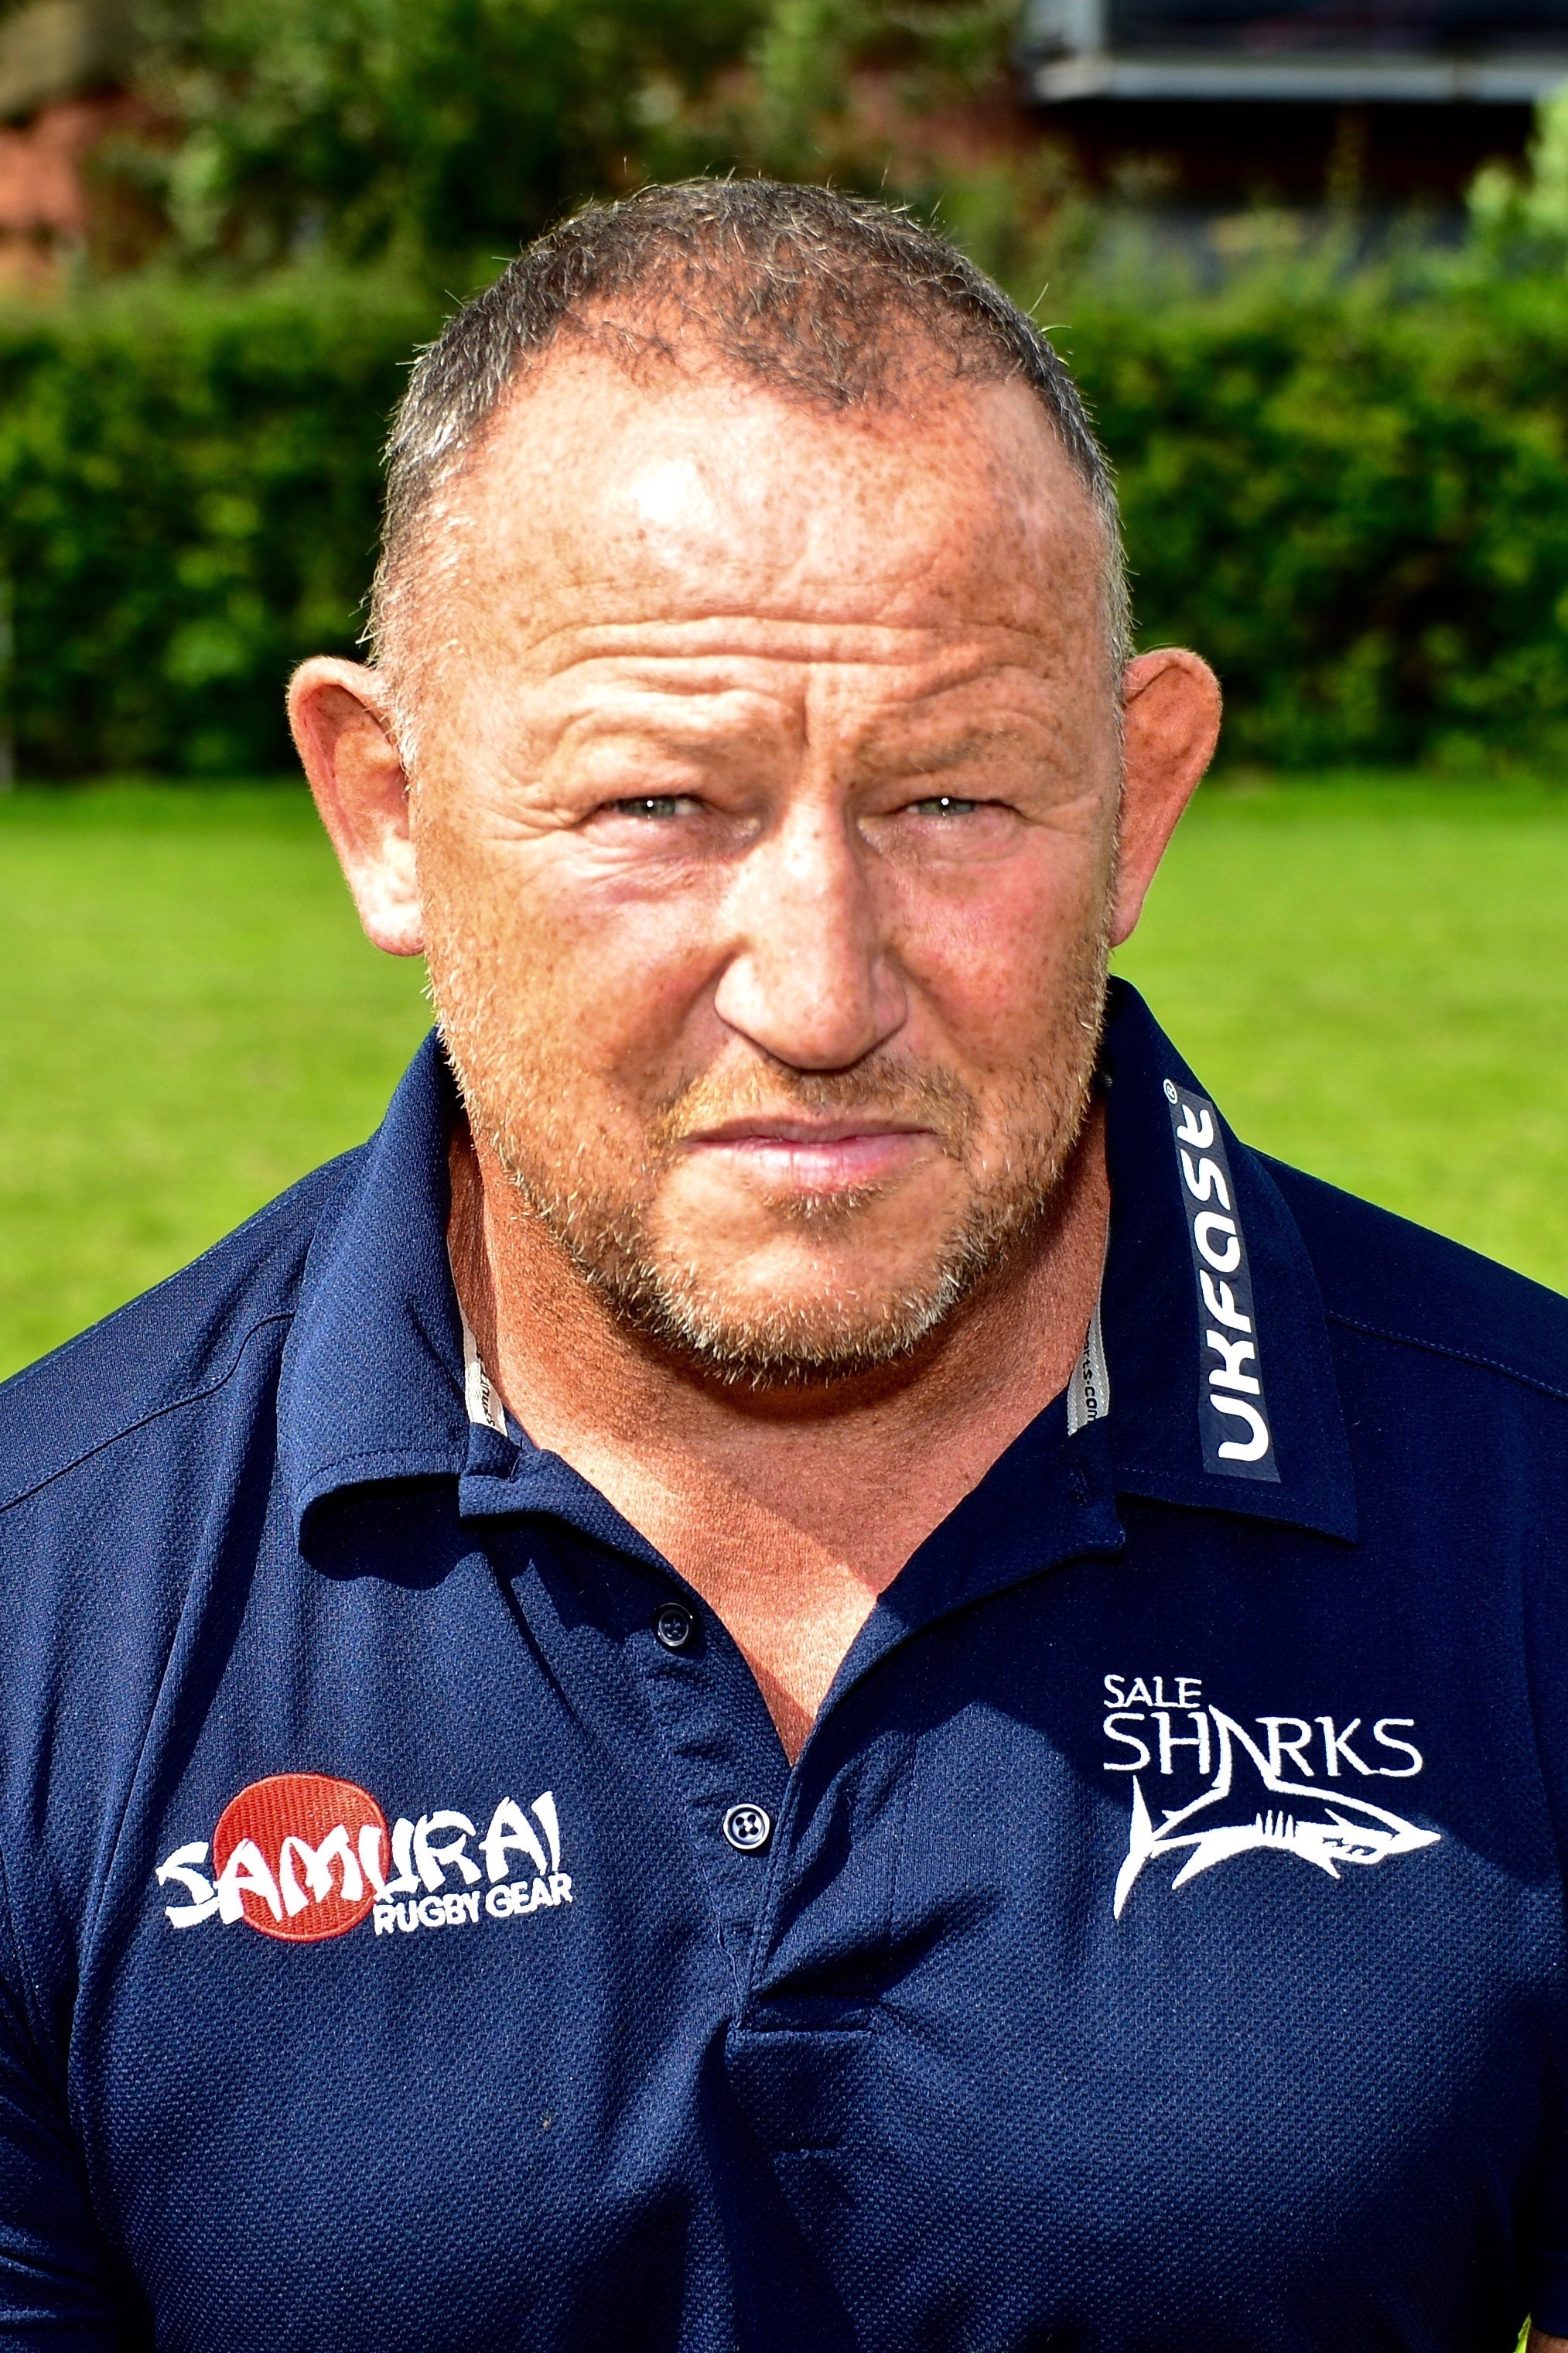 Sale Sharks boss Steve Diamond